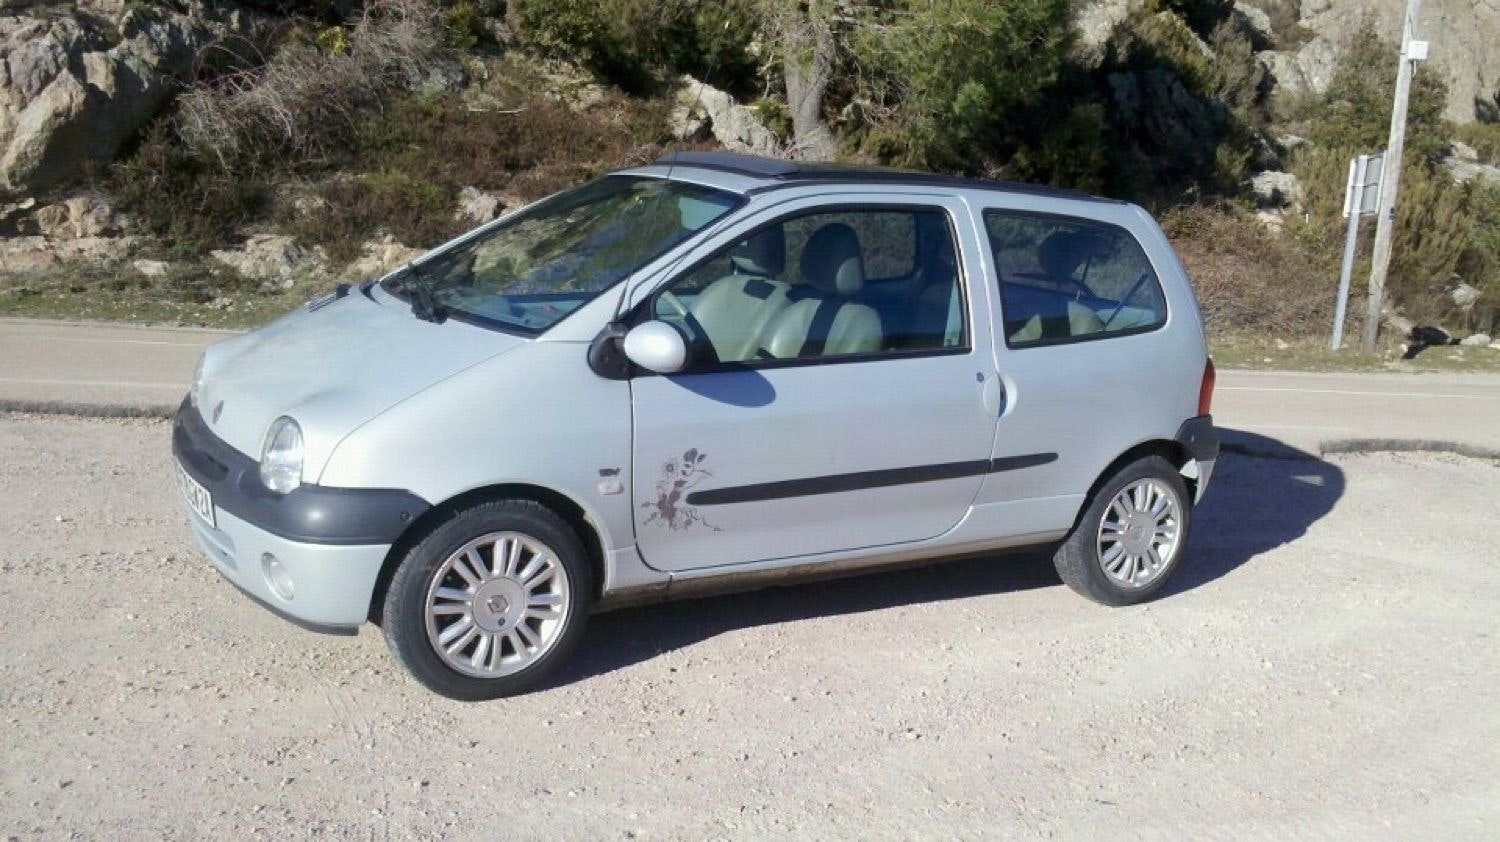 Renault Twingo 1,2 16V Initiale, 2007, Essence